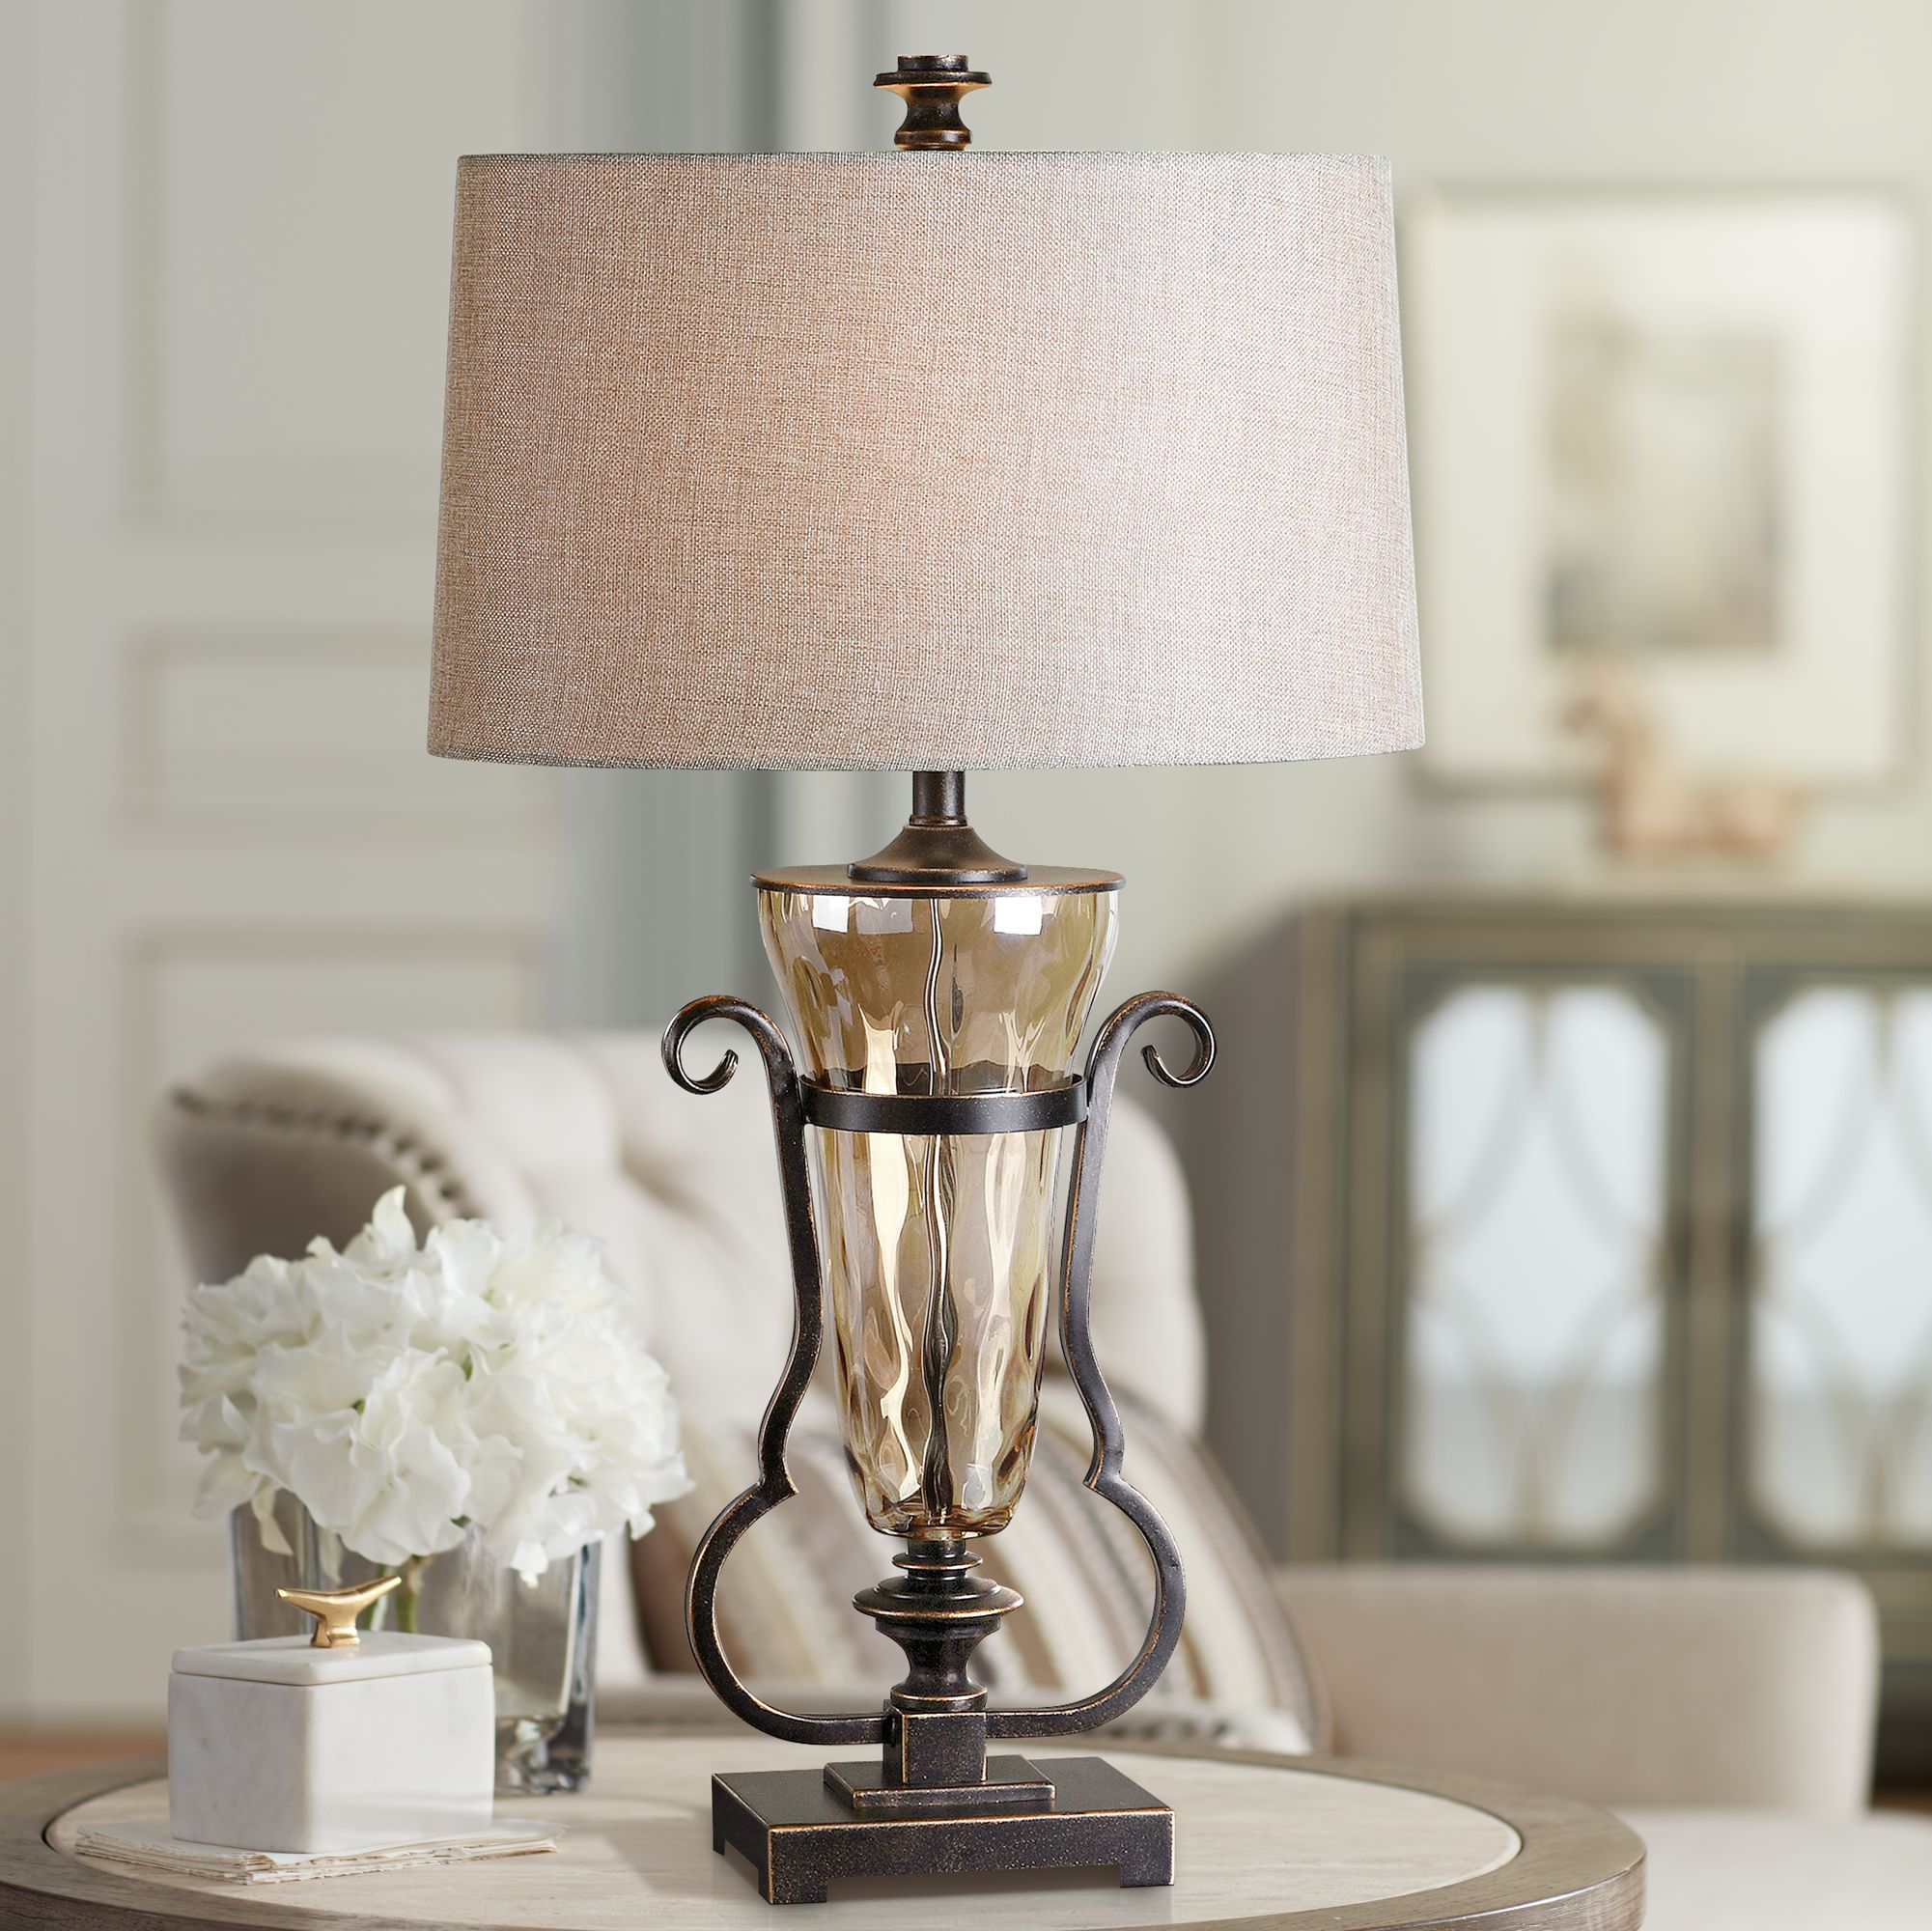 Uttermost Amilliana Amber Water Glass Table Lamp